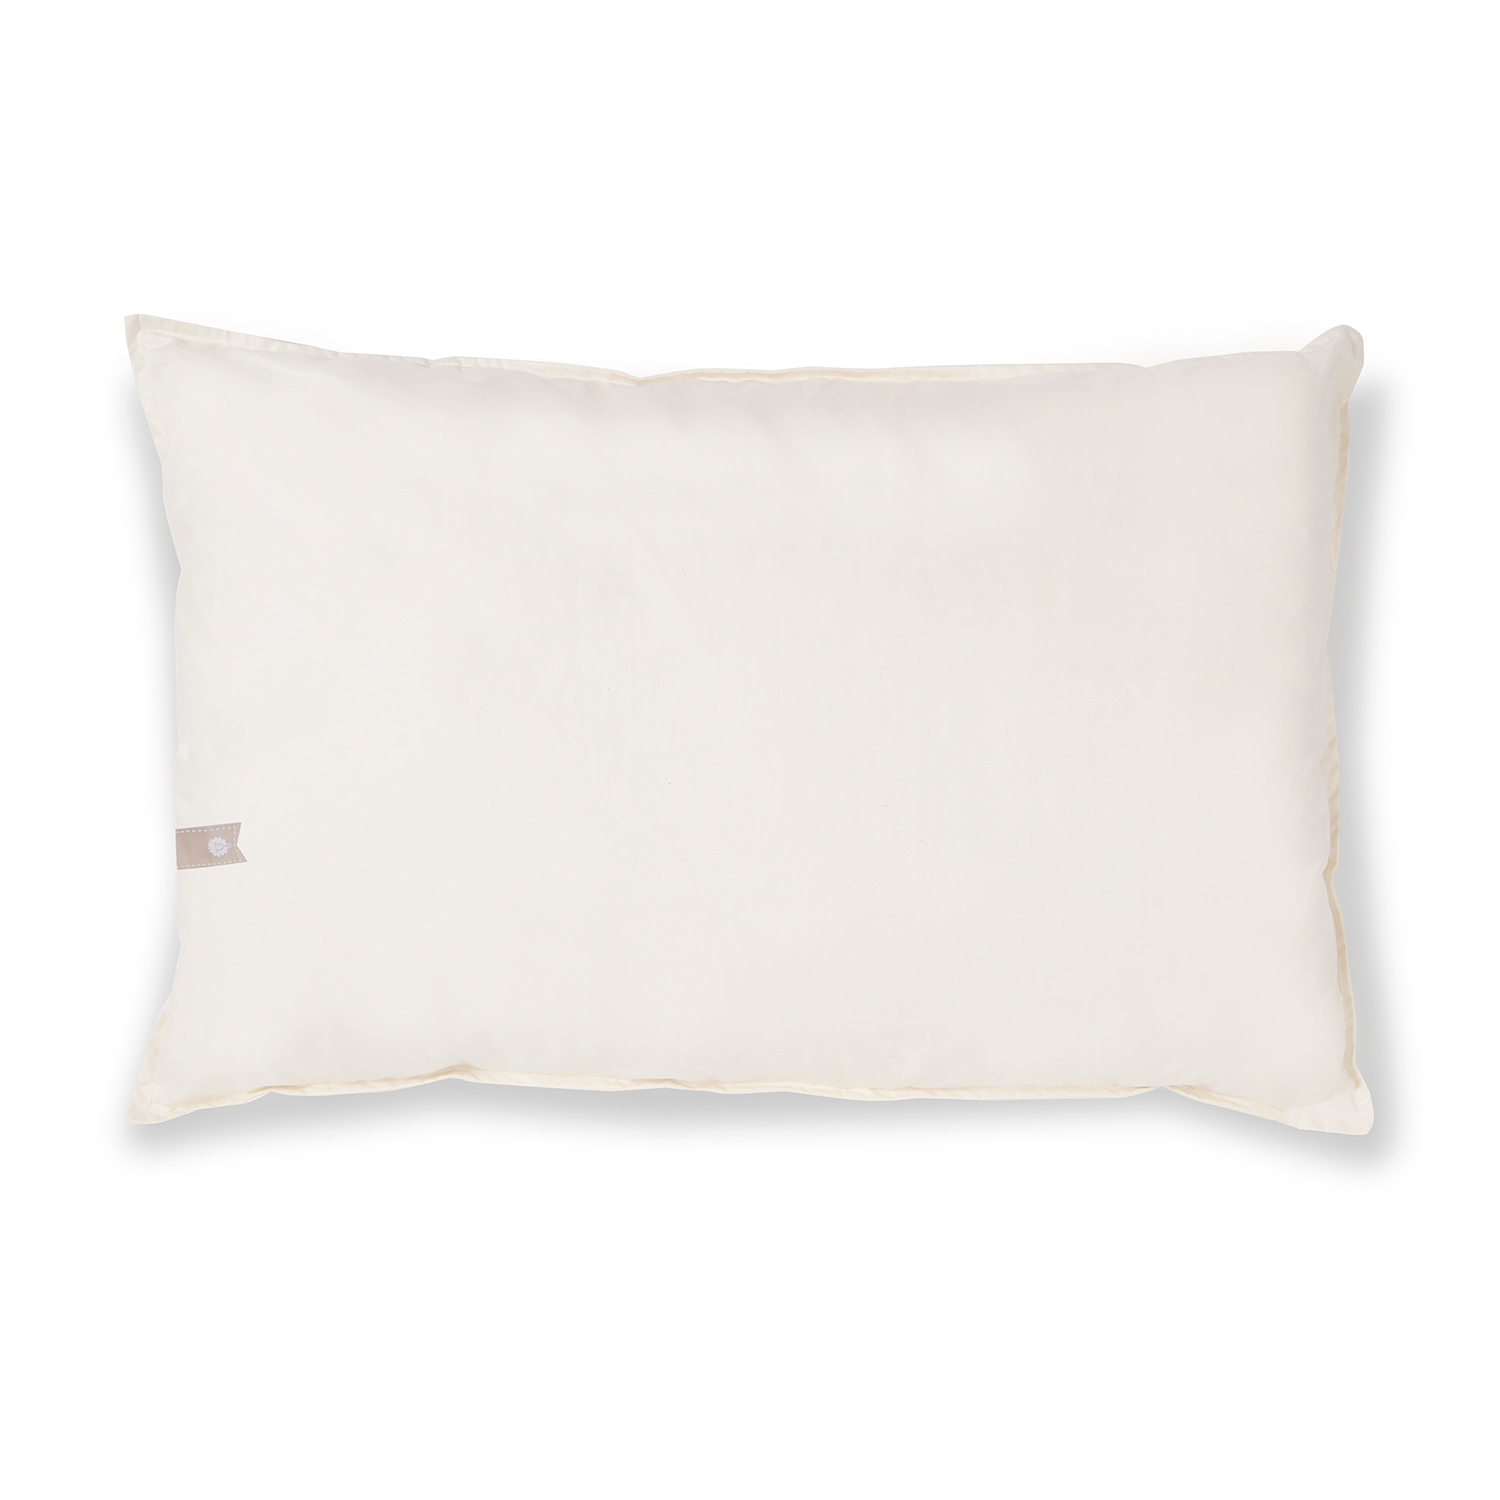 The Little Green Sheep Organic Children's Pillow